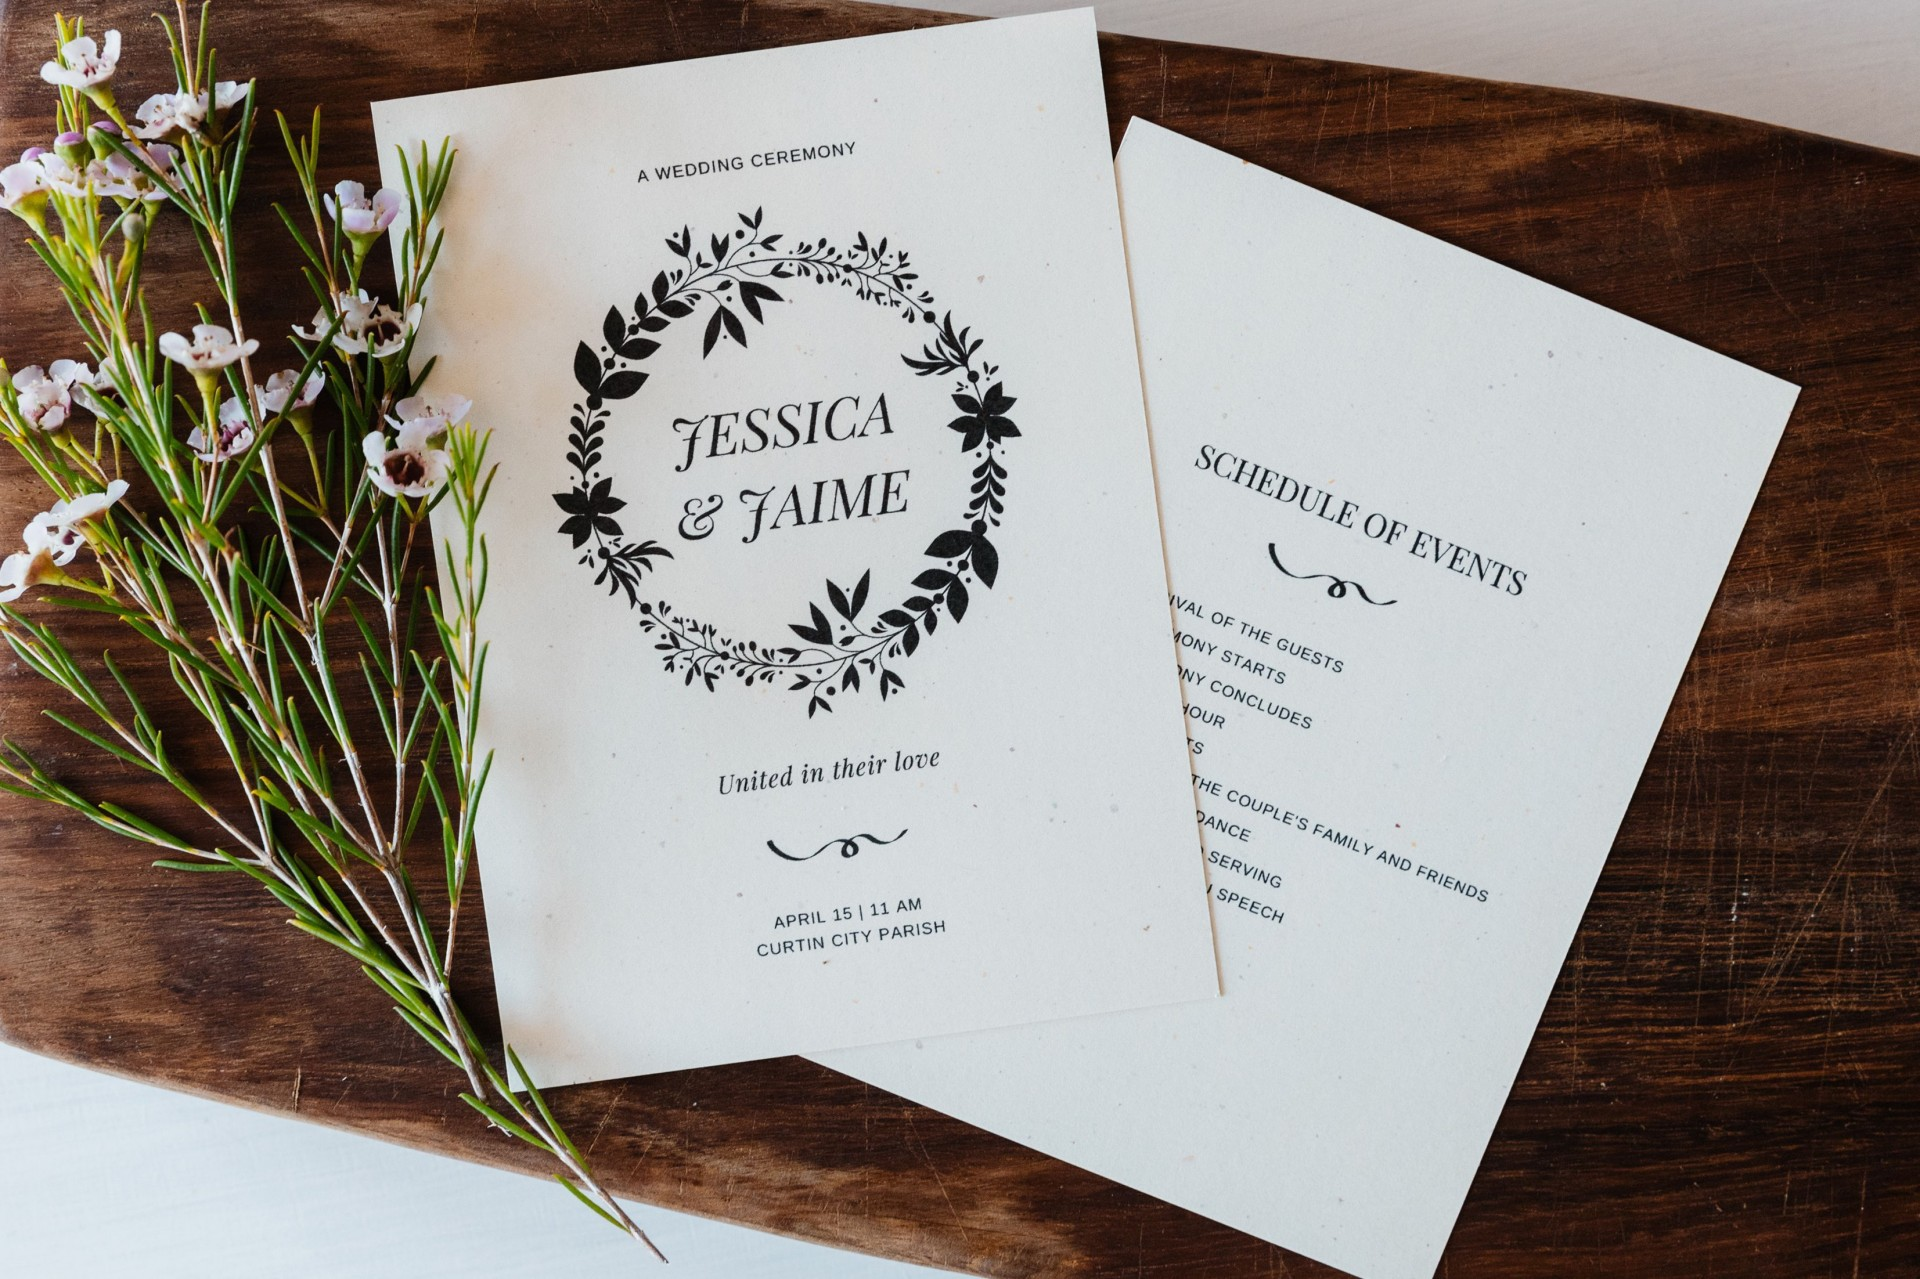 005 Top Wedding Order Of Service Template Free Inspiration  Front Cover Download Church1920